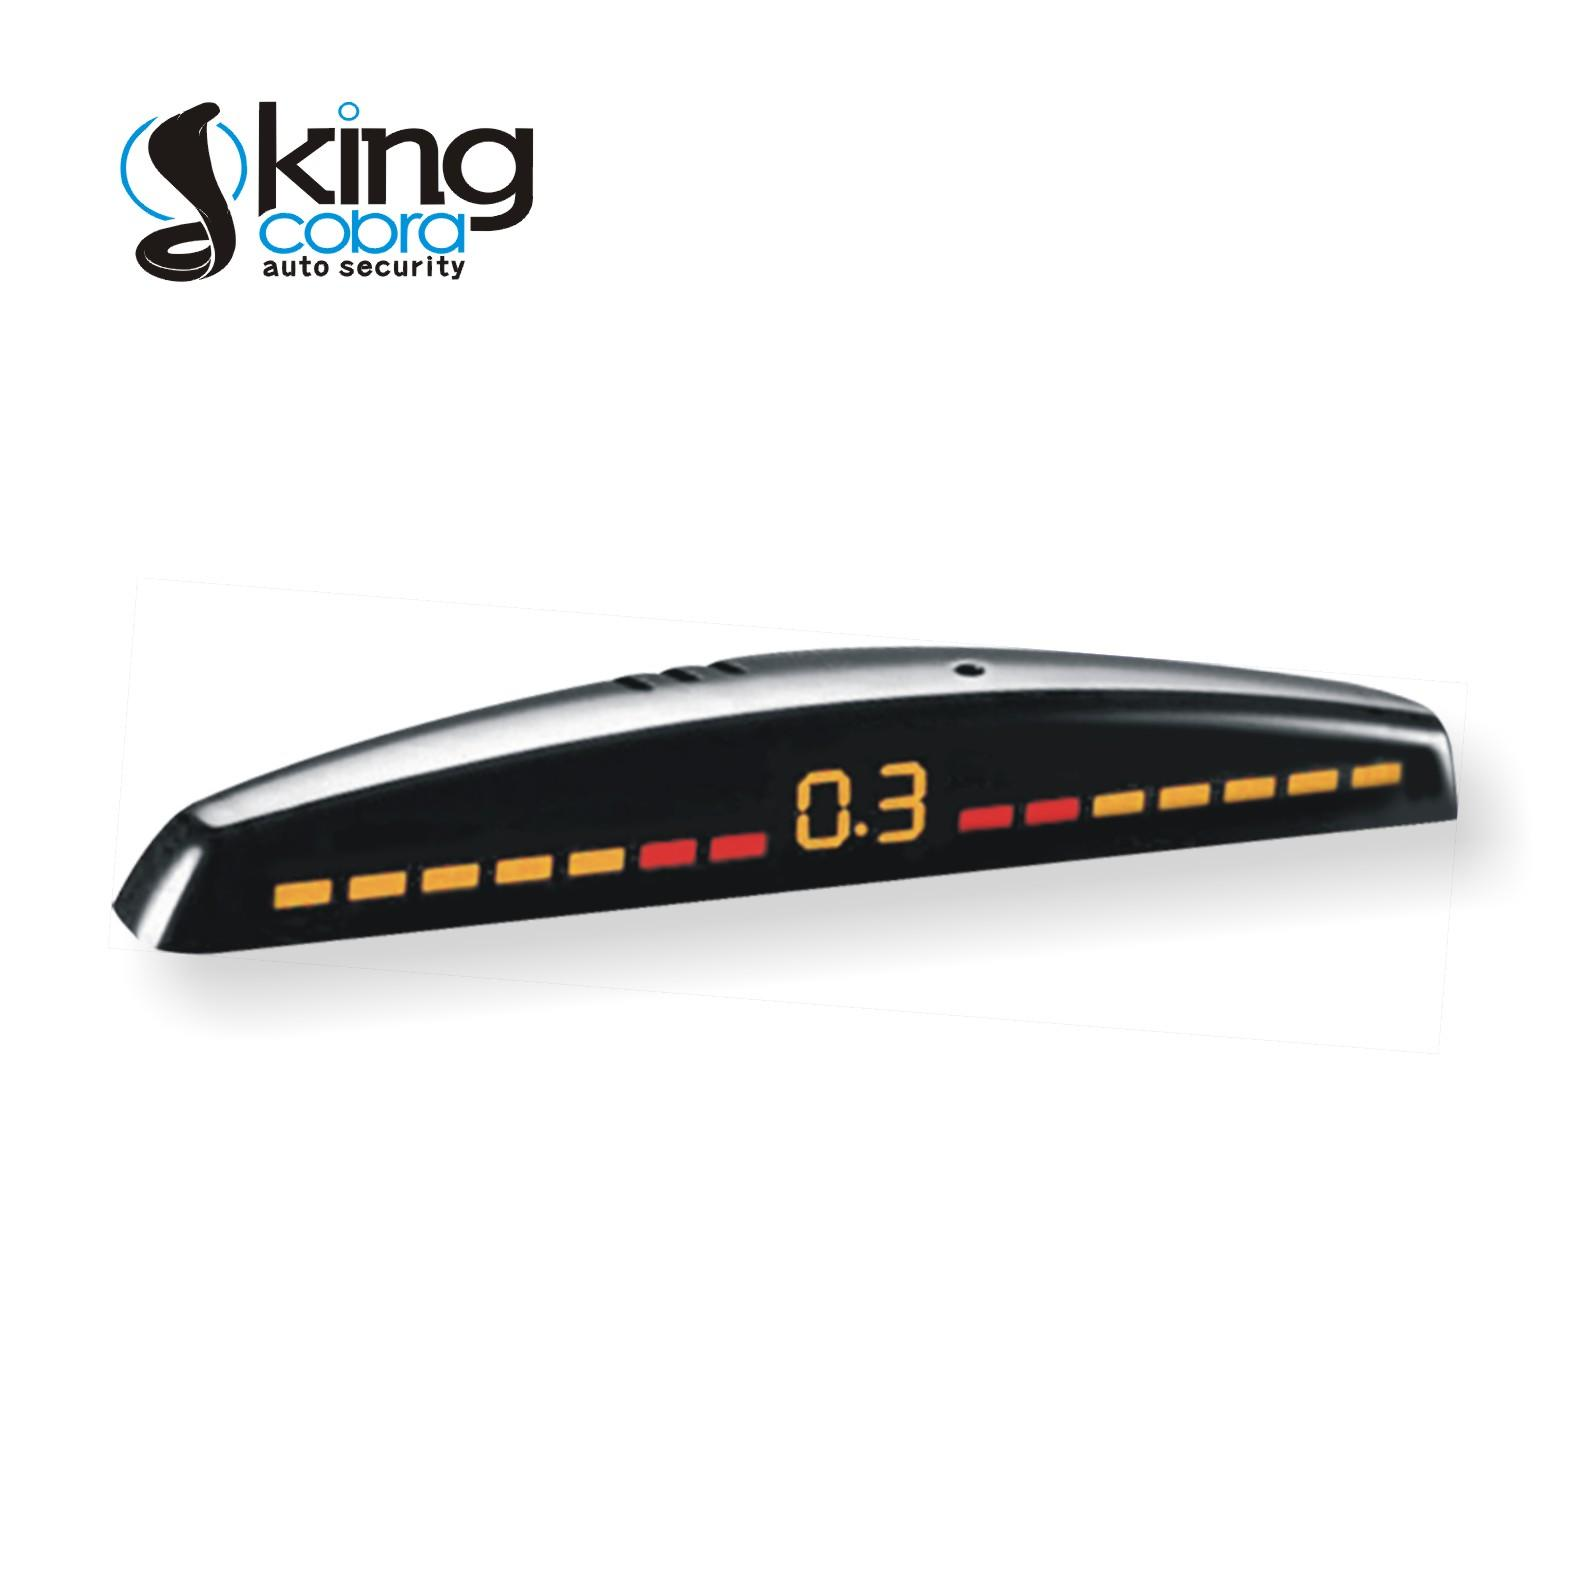 Kingcobra professional car reverse parking sensor manufacturer for sale